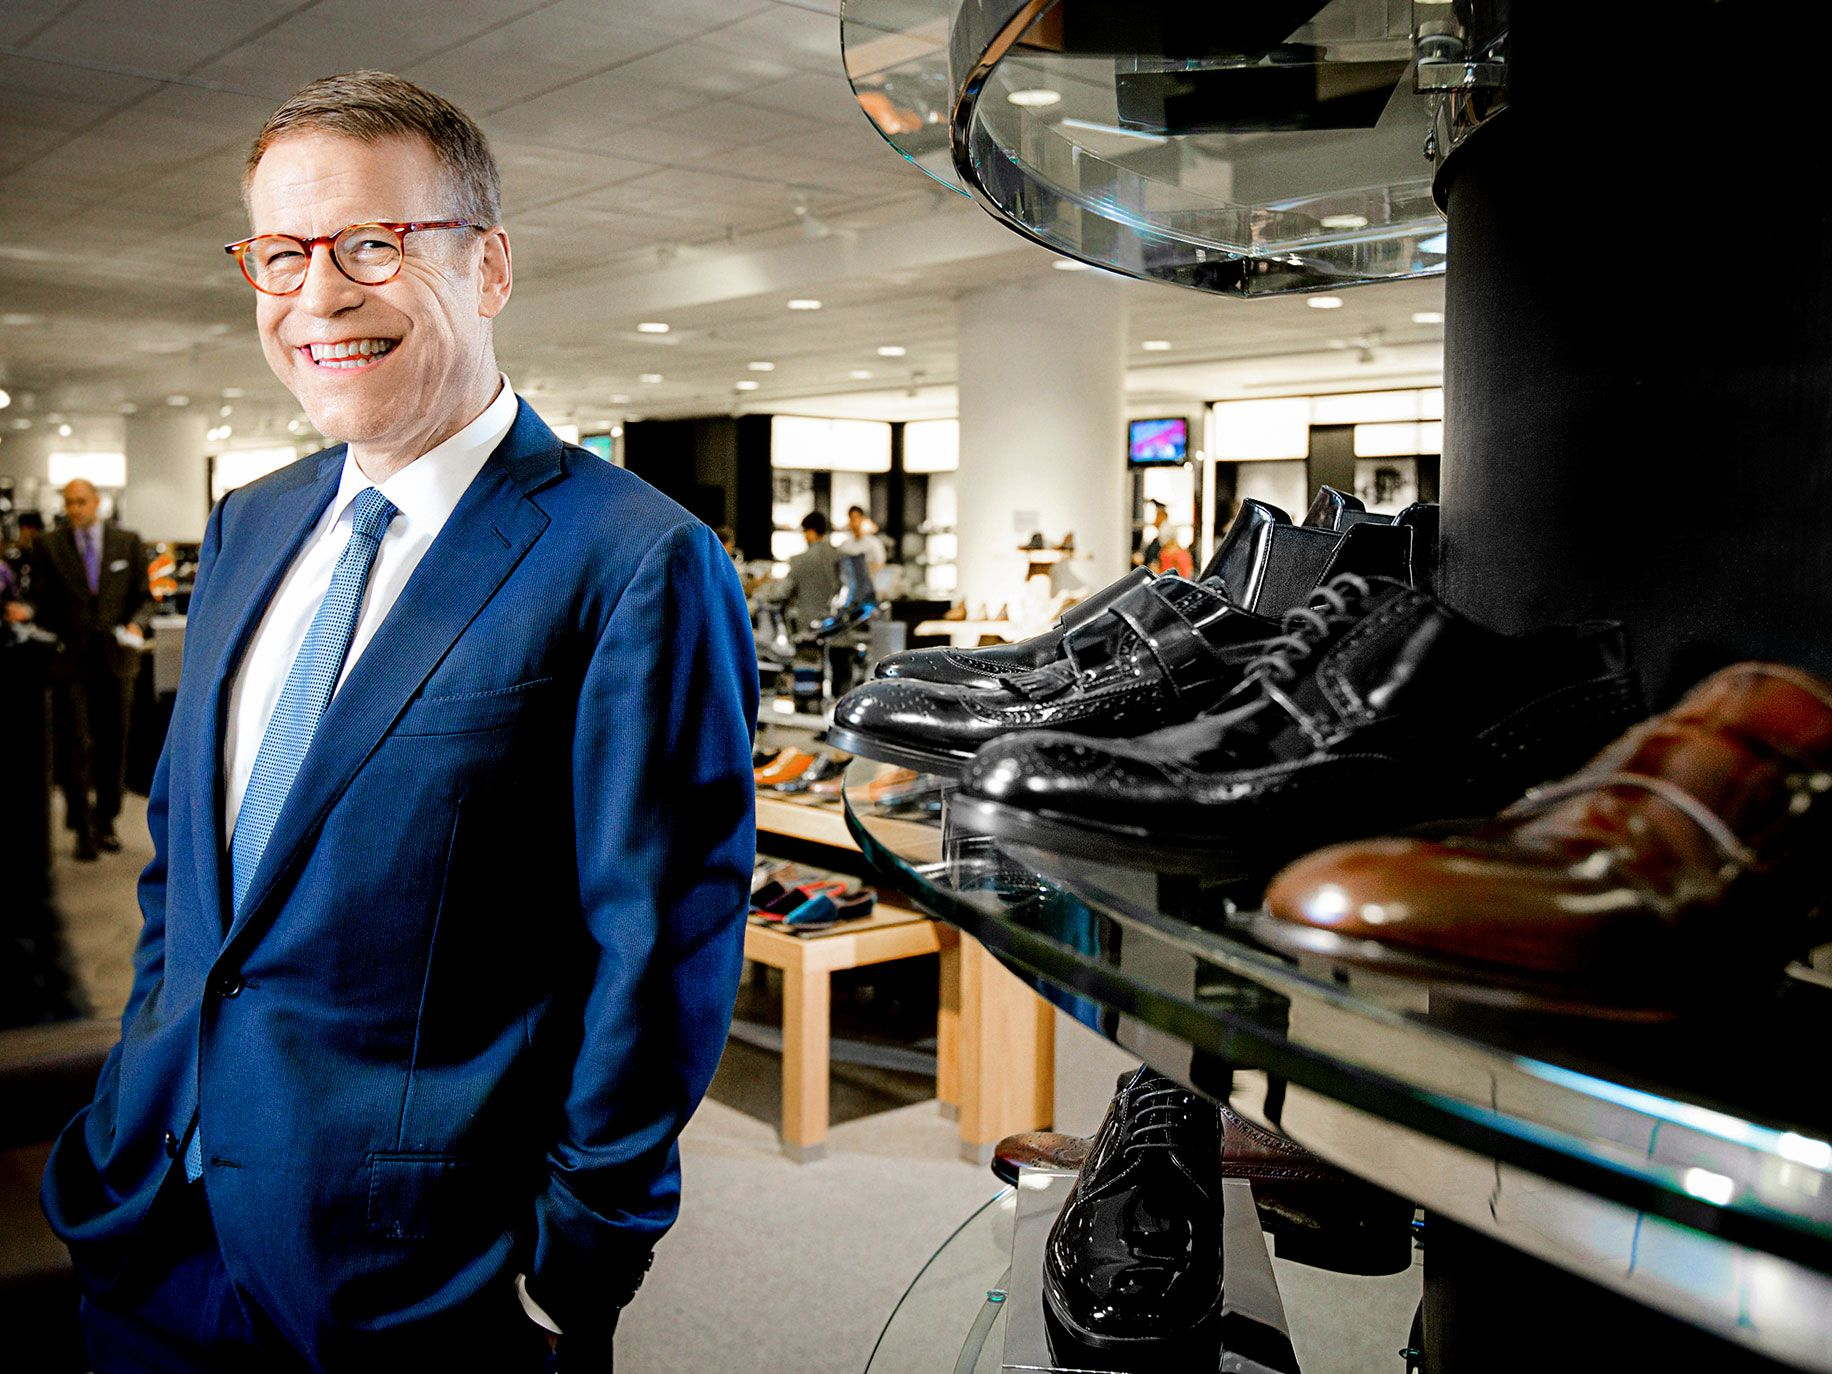 For Blake Nordstrom, retail was detail. He once left a store manager a list of 59 items needing attention—including helping a store employee with transportation to and from work.